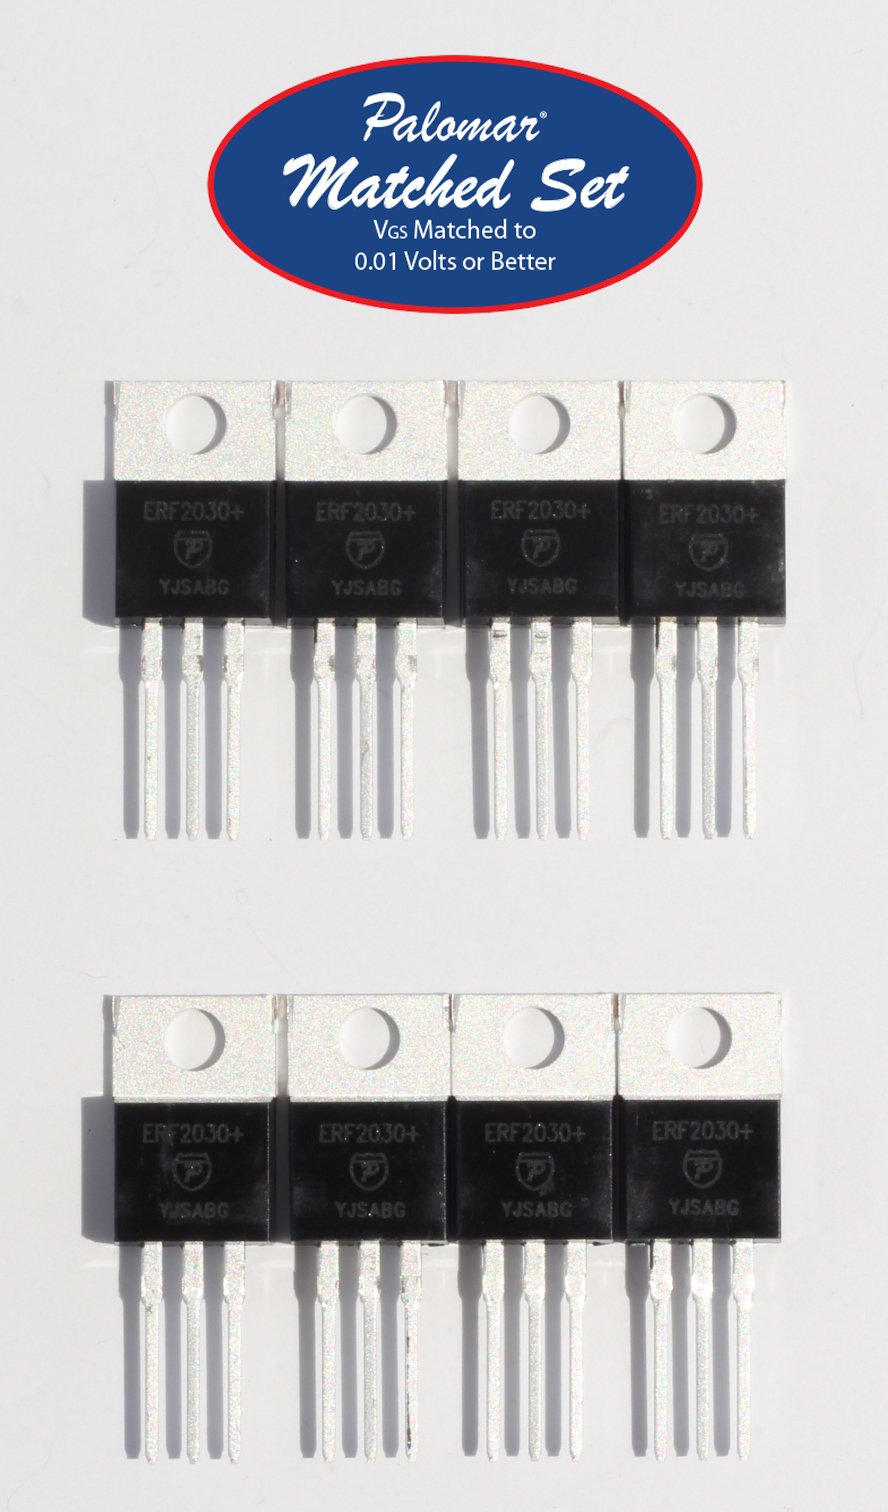 Two (2) Matched Sets of 4 (8 Mosfets Total) ERF2030+ 30 Watt PEP RF Power Mosfet Transistor in TO-220 Package